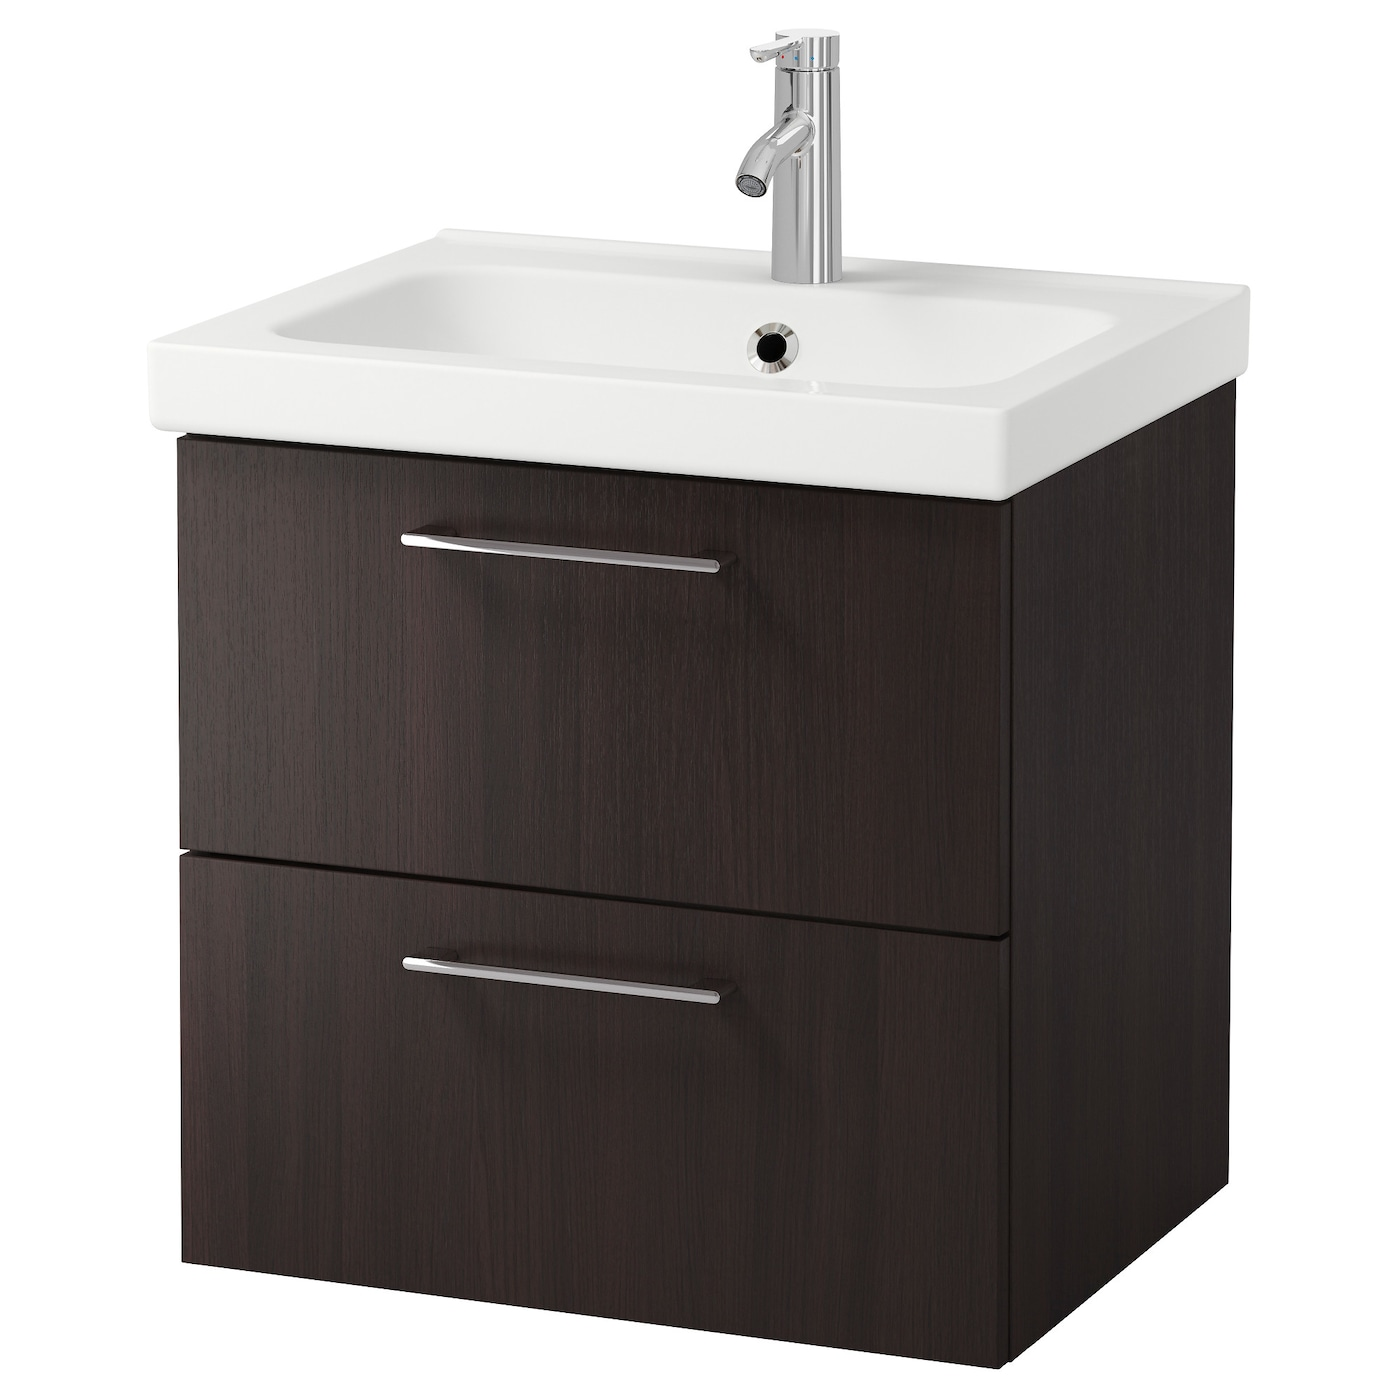 Odensvik godmorgon wash stand with 2 drawers black brown for Meubles salle de bain ikea godmorgon